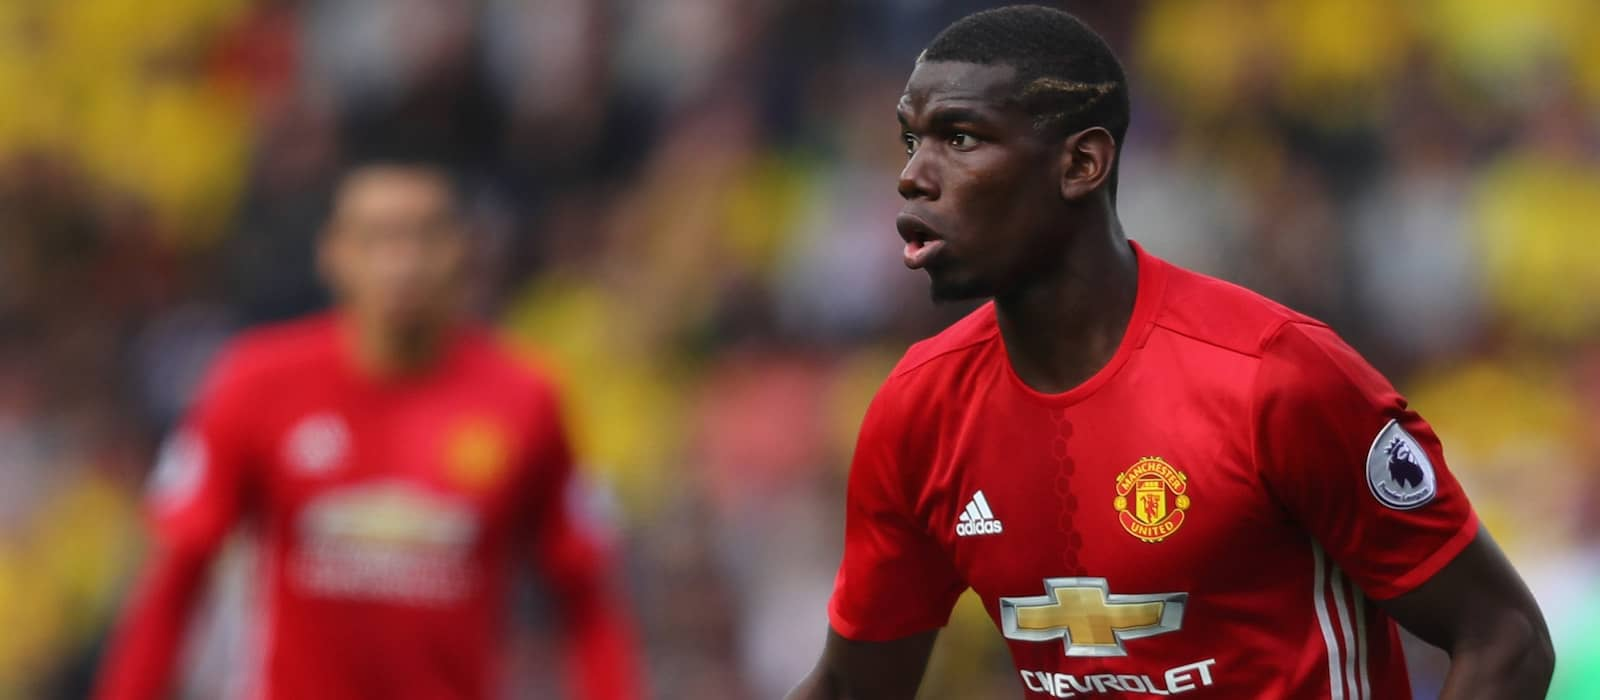 Luis Nani backs Paul Pogba to succeed at Manchester United